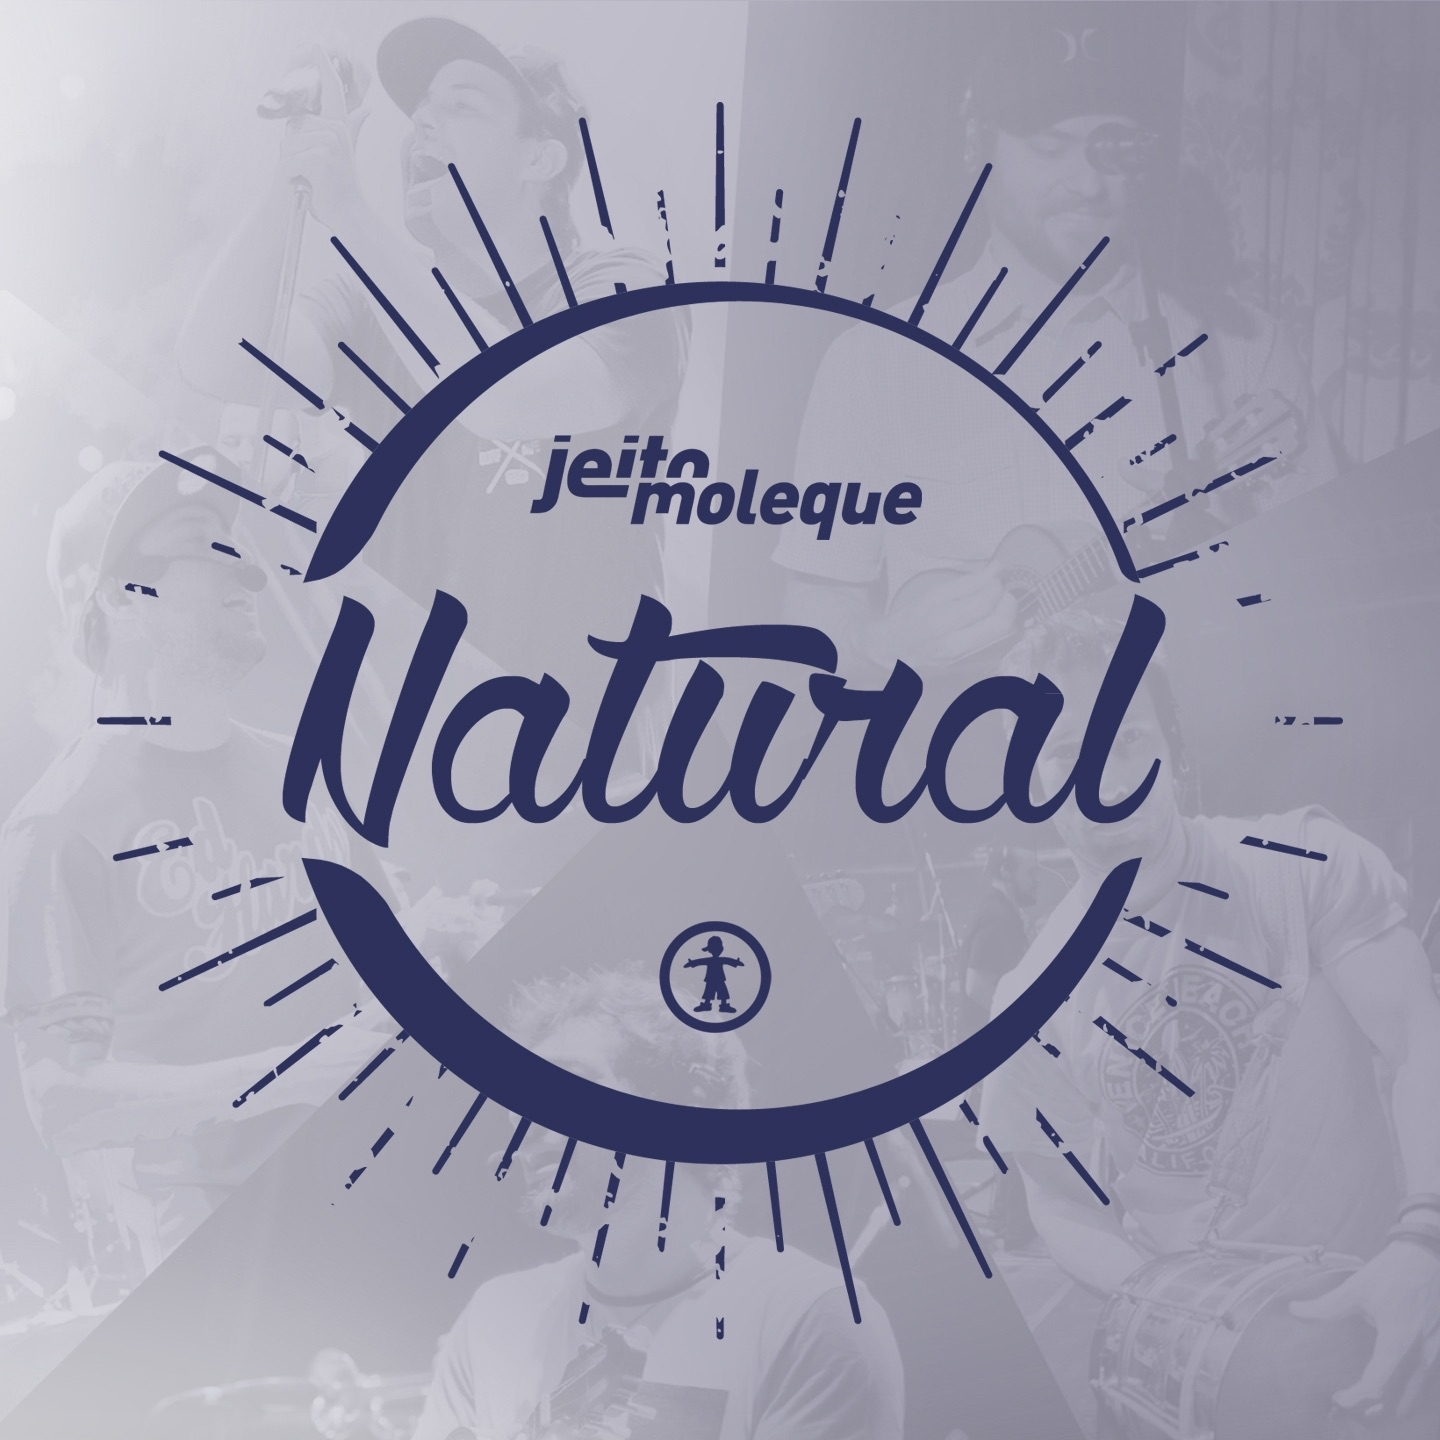 Natural (feat. Alexandre Carlo) - Single